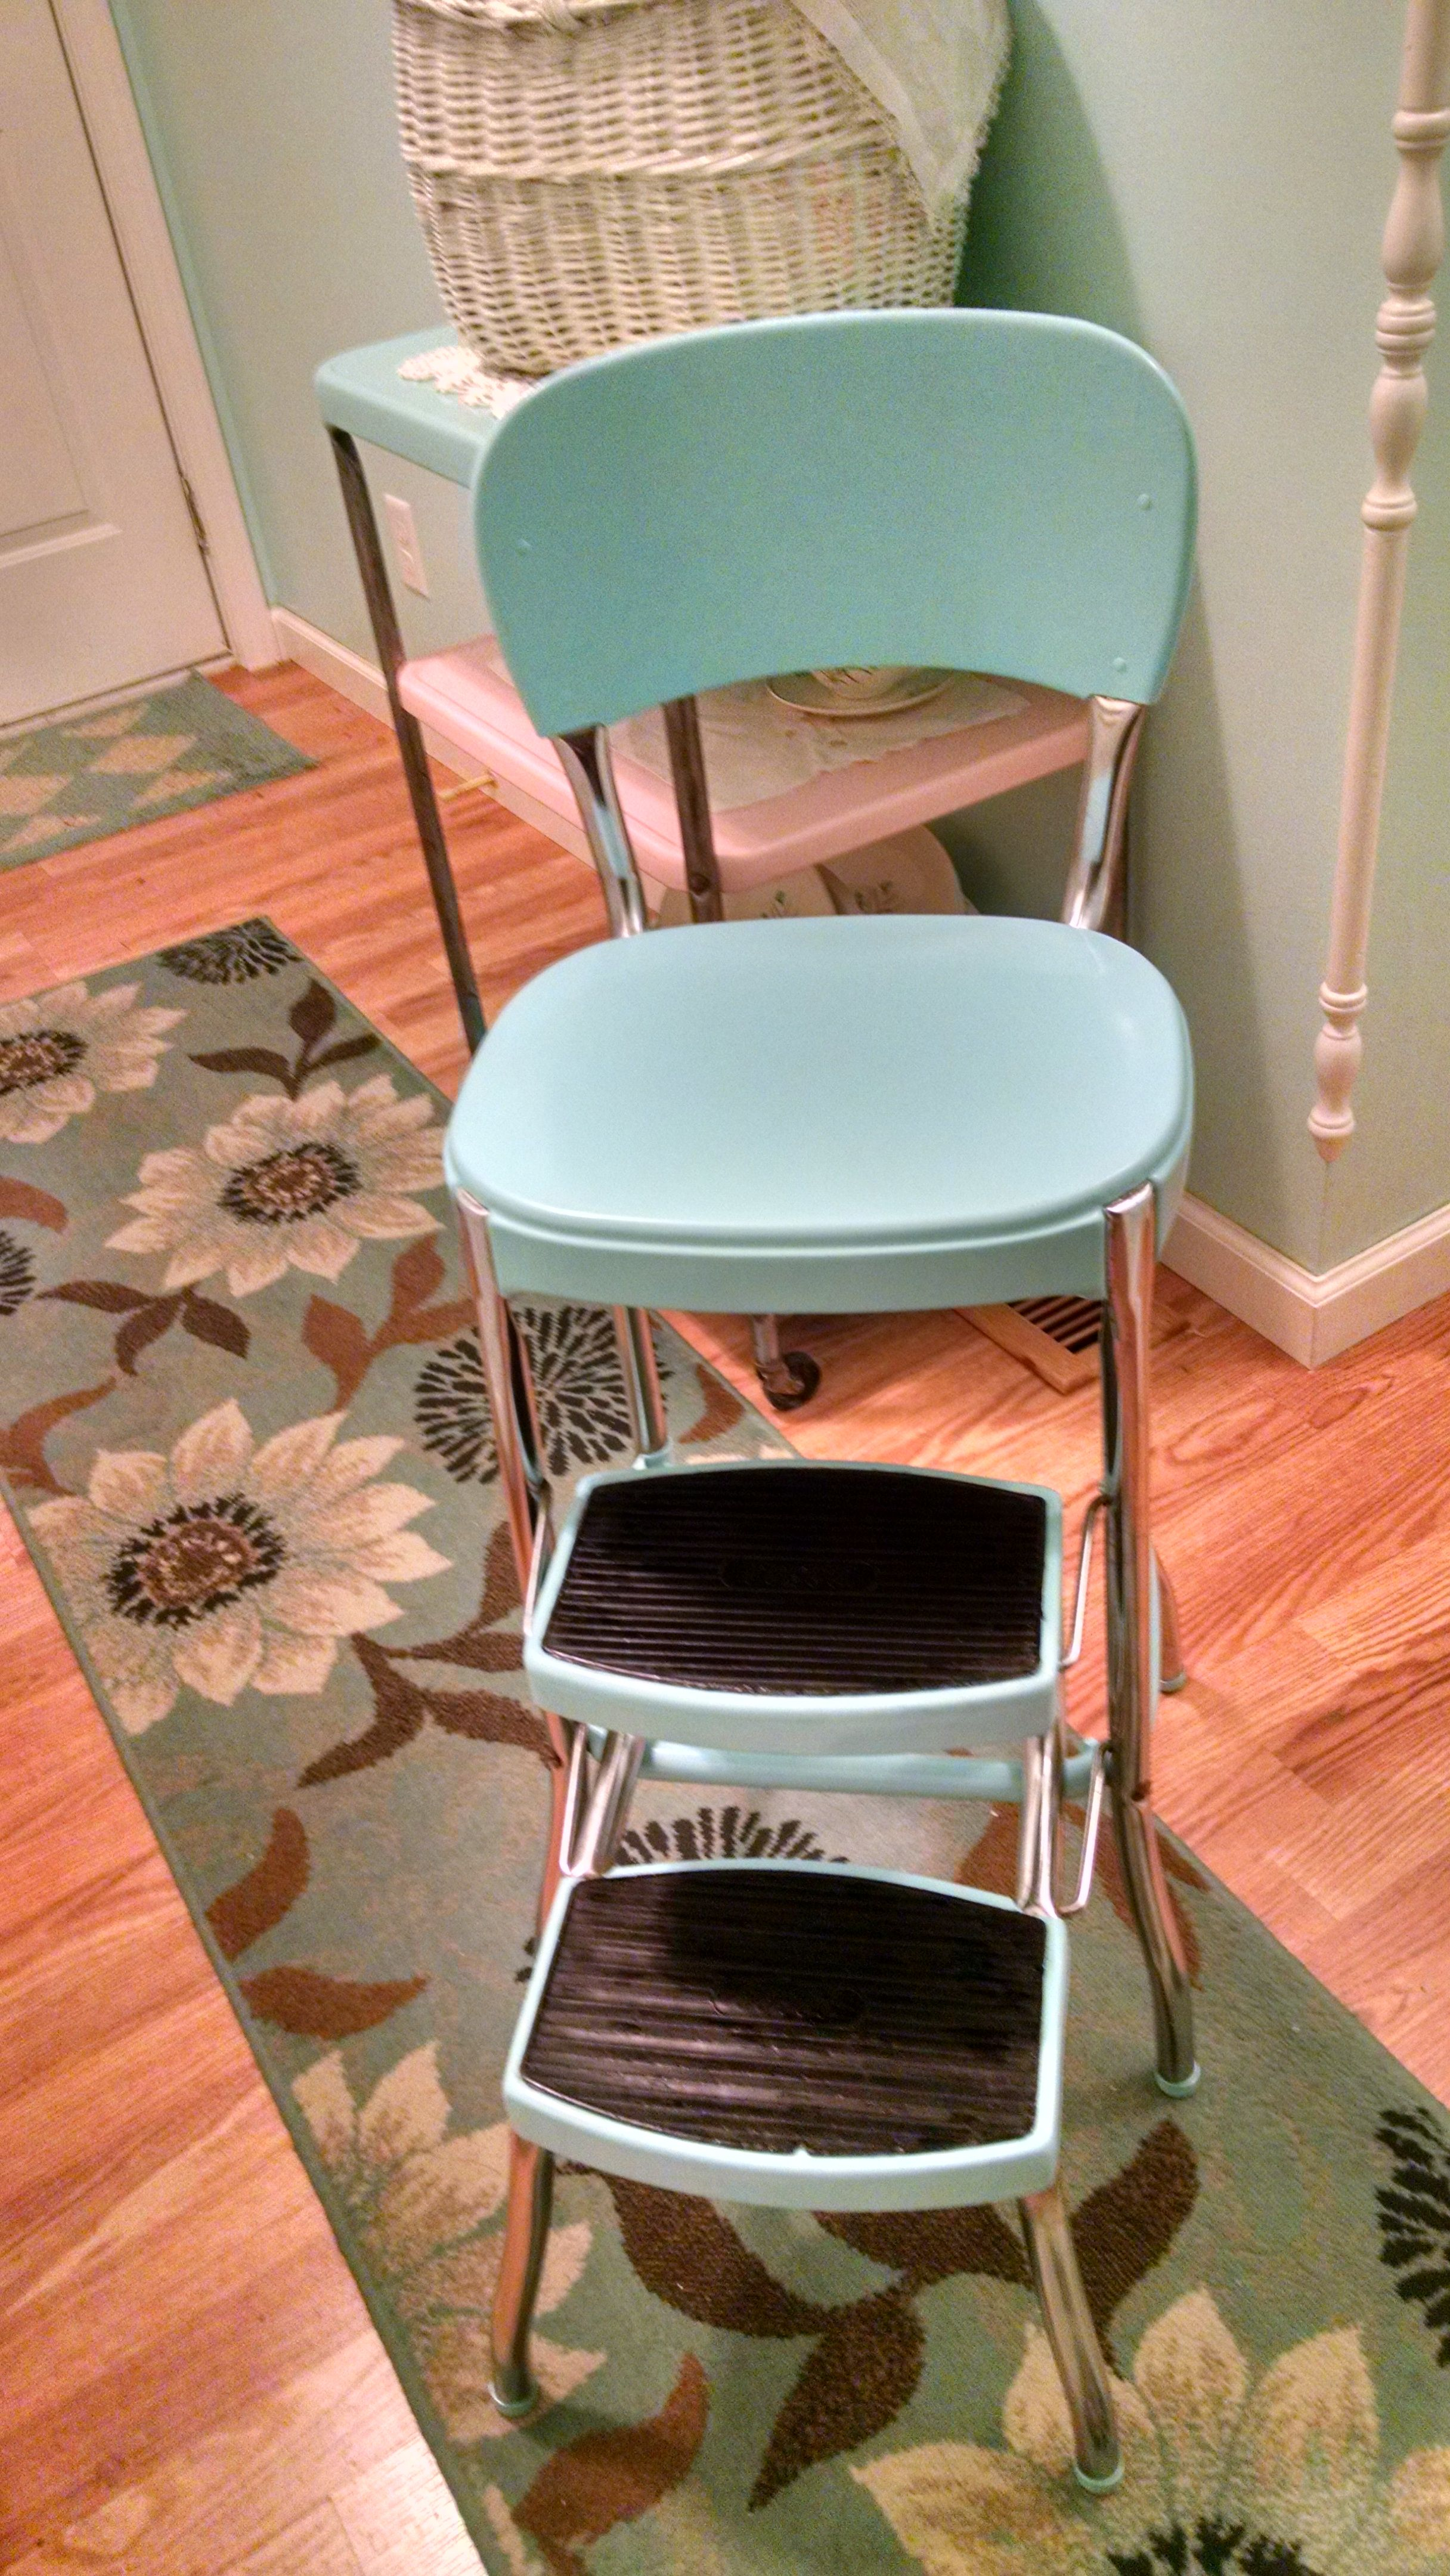 vintage kitchen step stool chair chest old cosco made new again aqua makeover